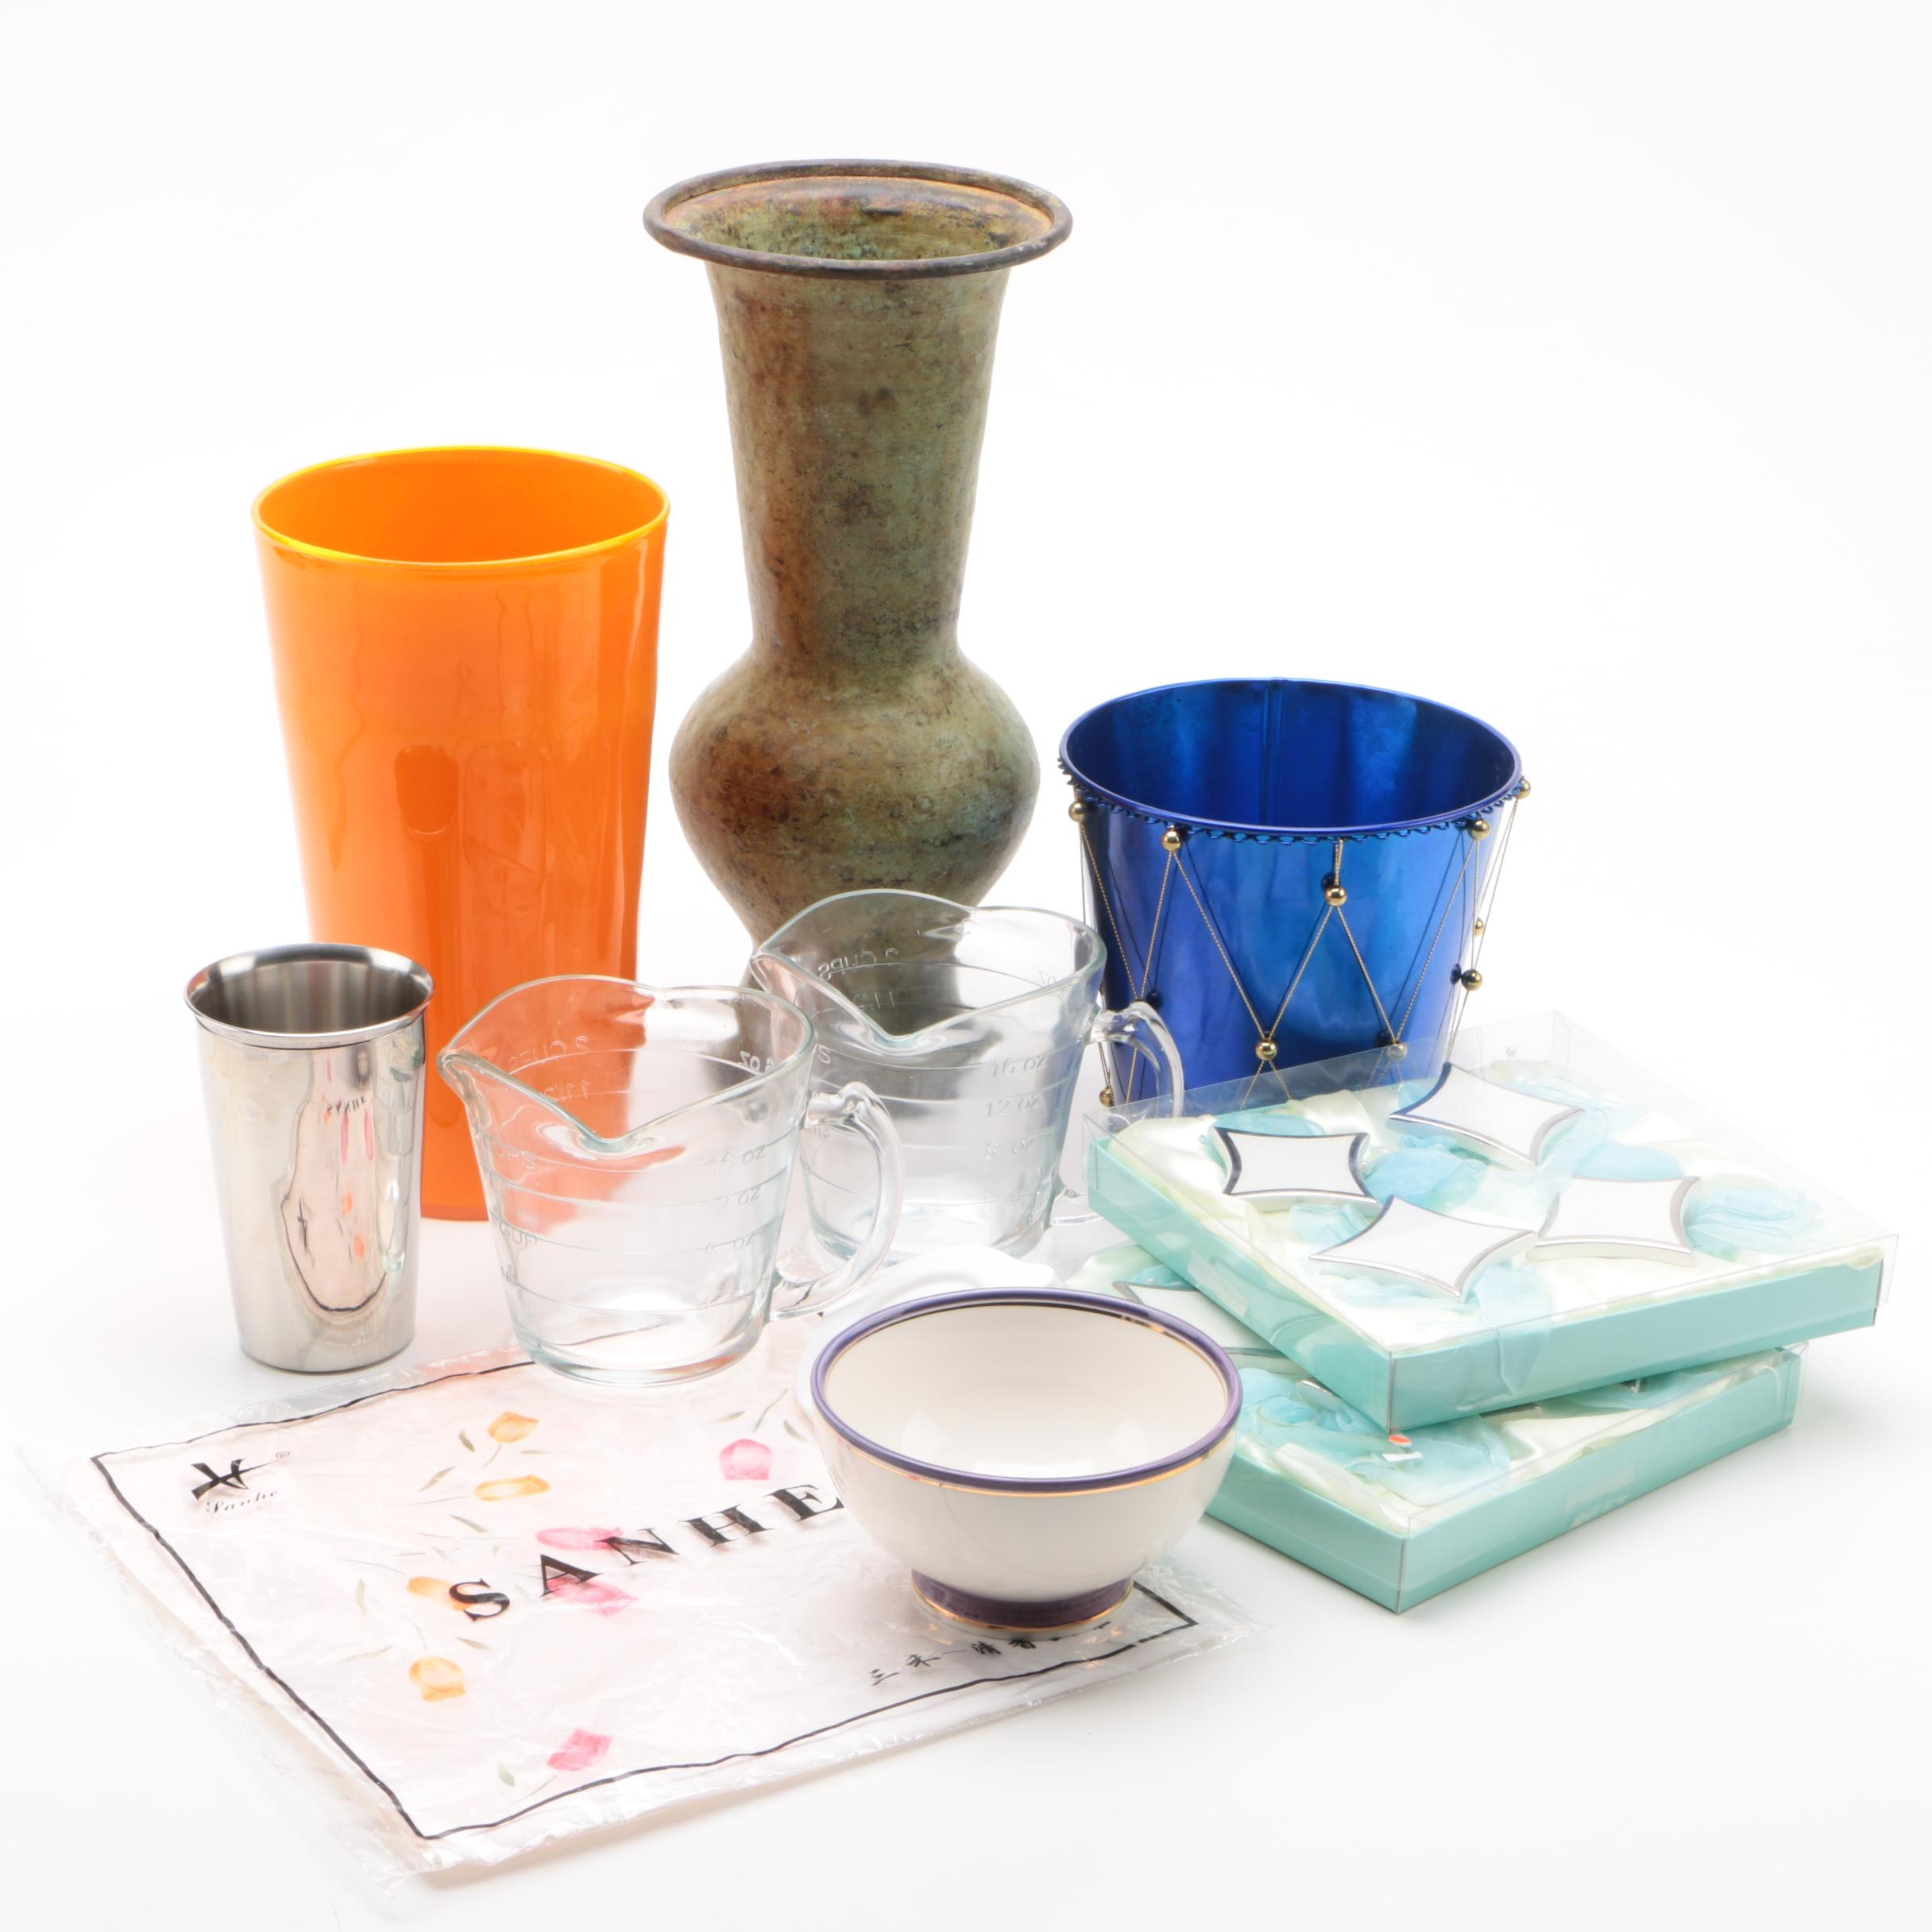 Kitchenware, Tableware and Decor Including Pottery Barn and Sanhe